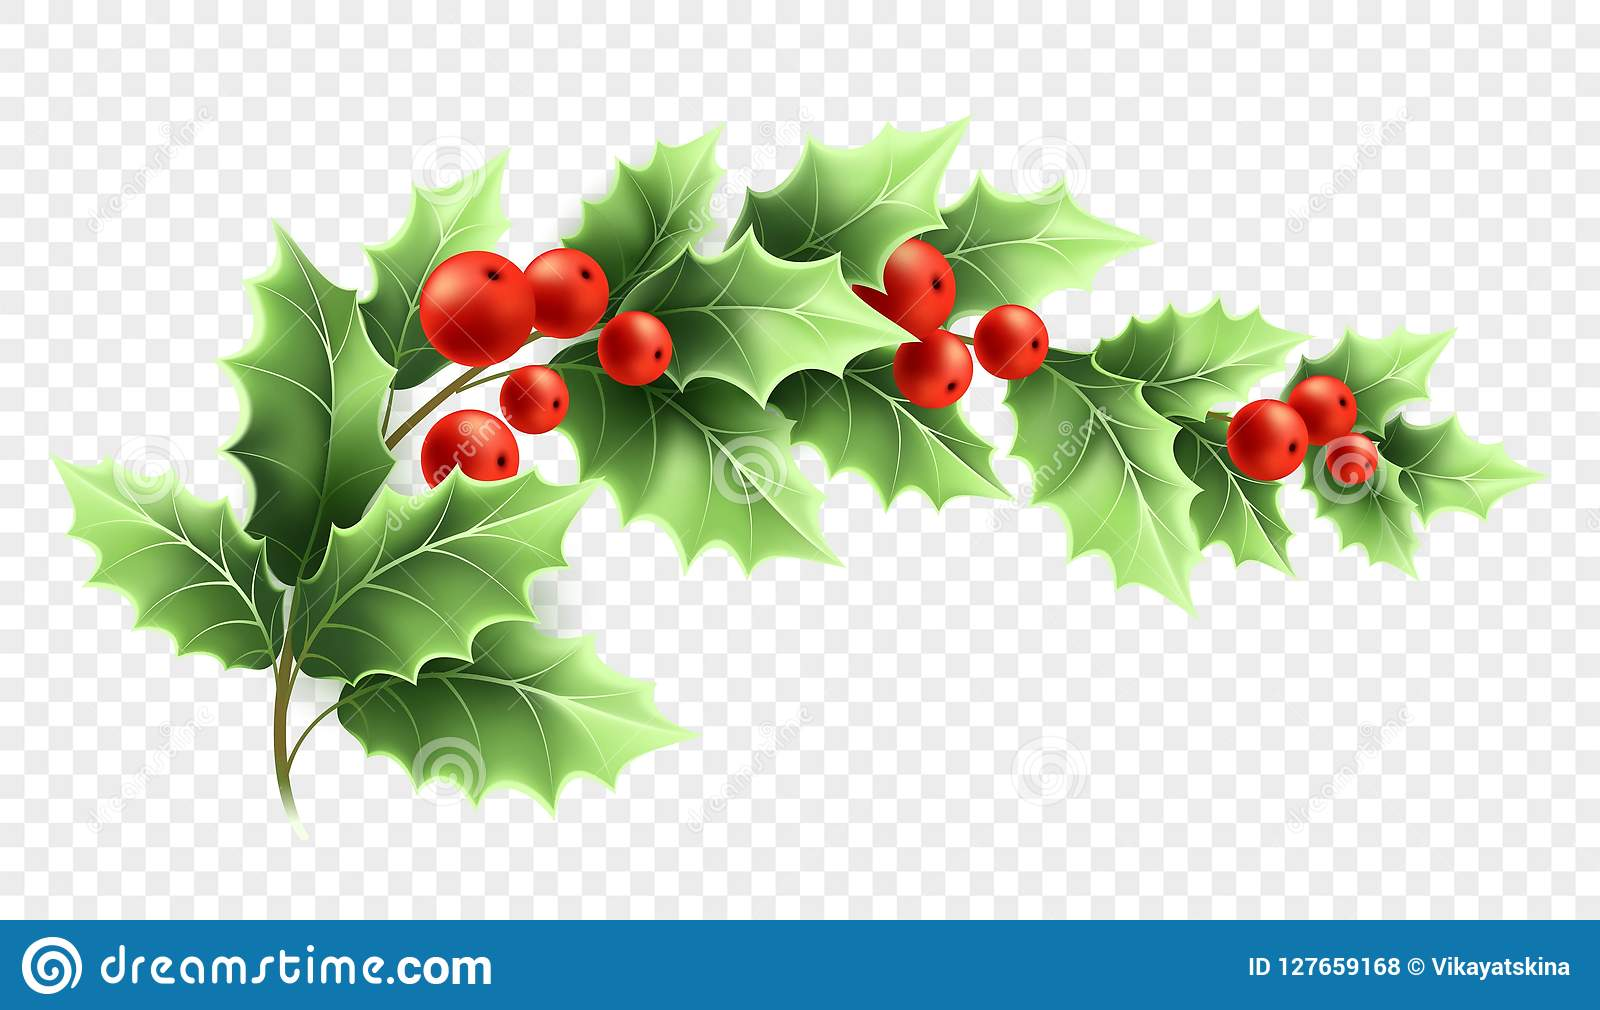 Christmas Holly Clipart Transparent.Christmas Holly Branch Realistic Illustration Stock Vector